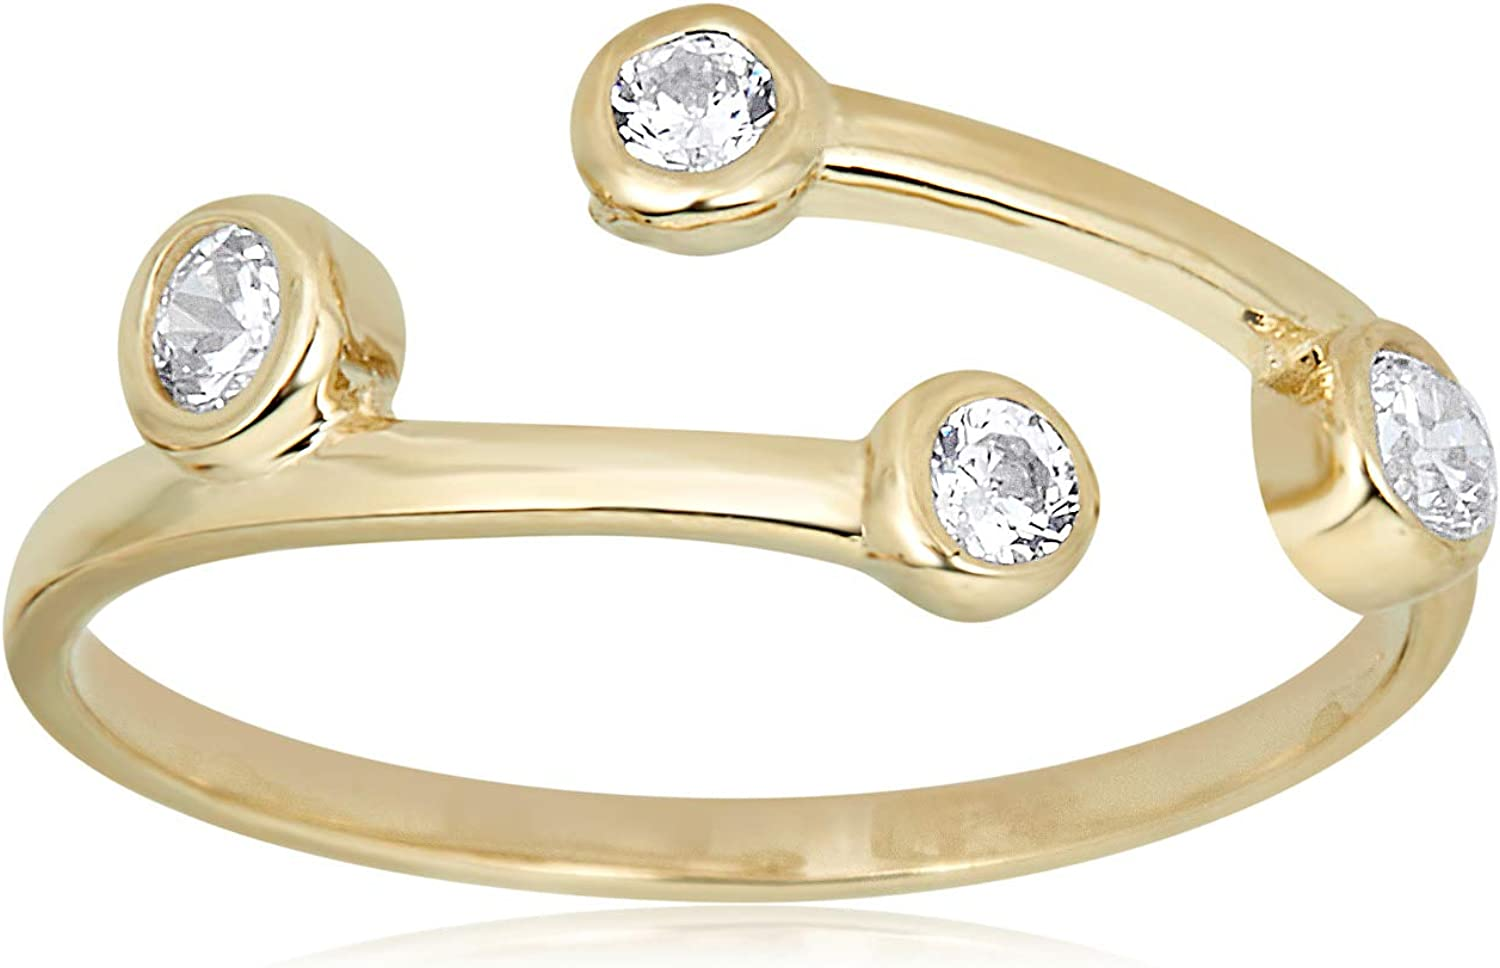 AVORA 10K Yellow Gold Adjustable Toe 40% OFF Cheap Jacksonville Mall Sale Bypass Bezel-Set Ring with